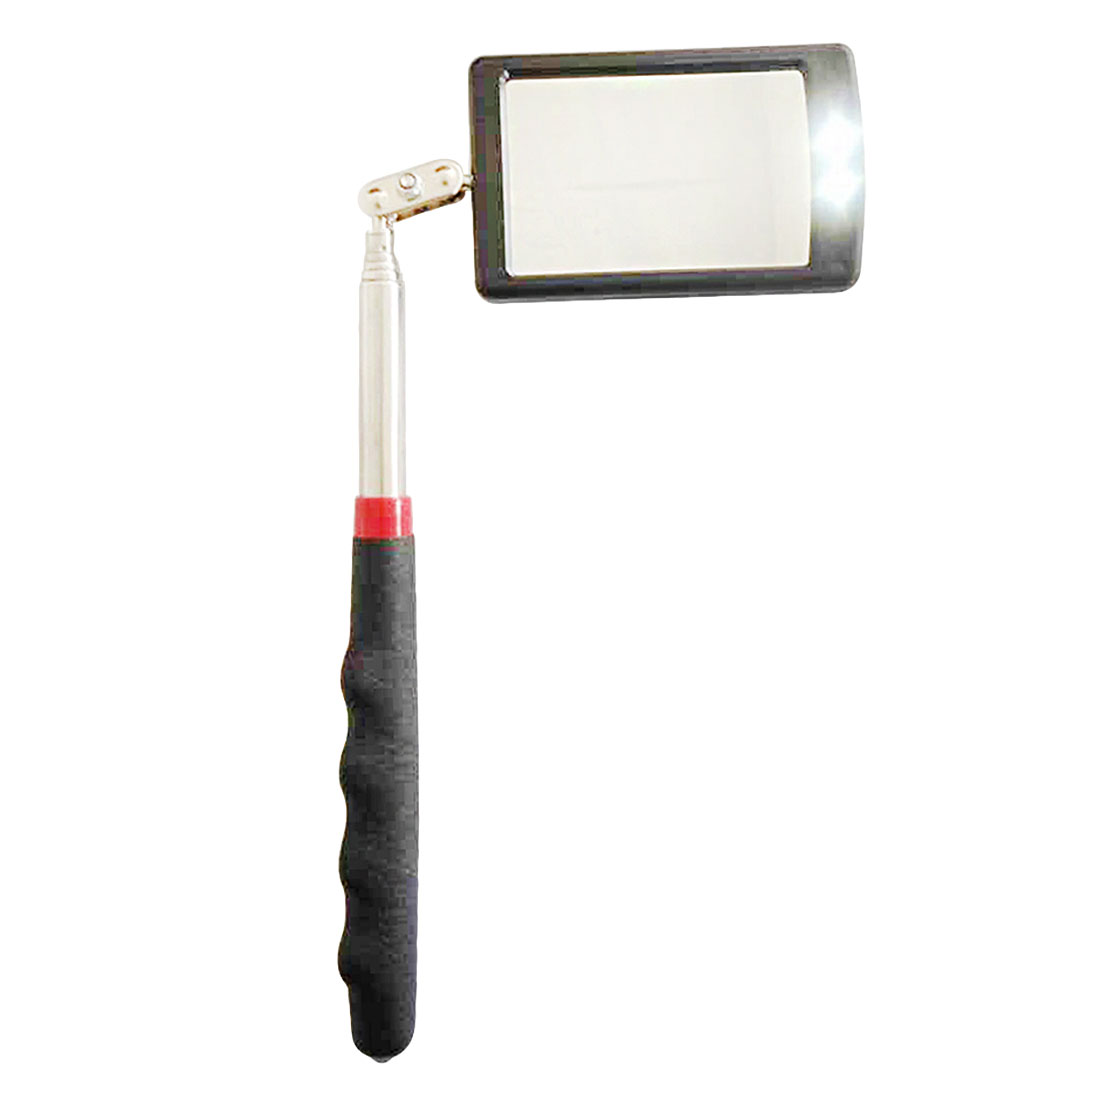 Flexible Car Angle View Pen Automotive Telescopic Detection Lens Telescoping Inspection Mirror Extending AdjustableFlexible Car Angle View Pen Automotive Telescopic Detection Lens Telescoping Inspection Mirror Extending Adjustable